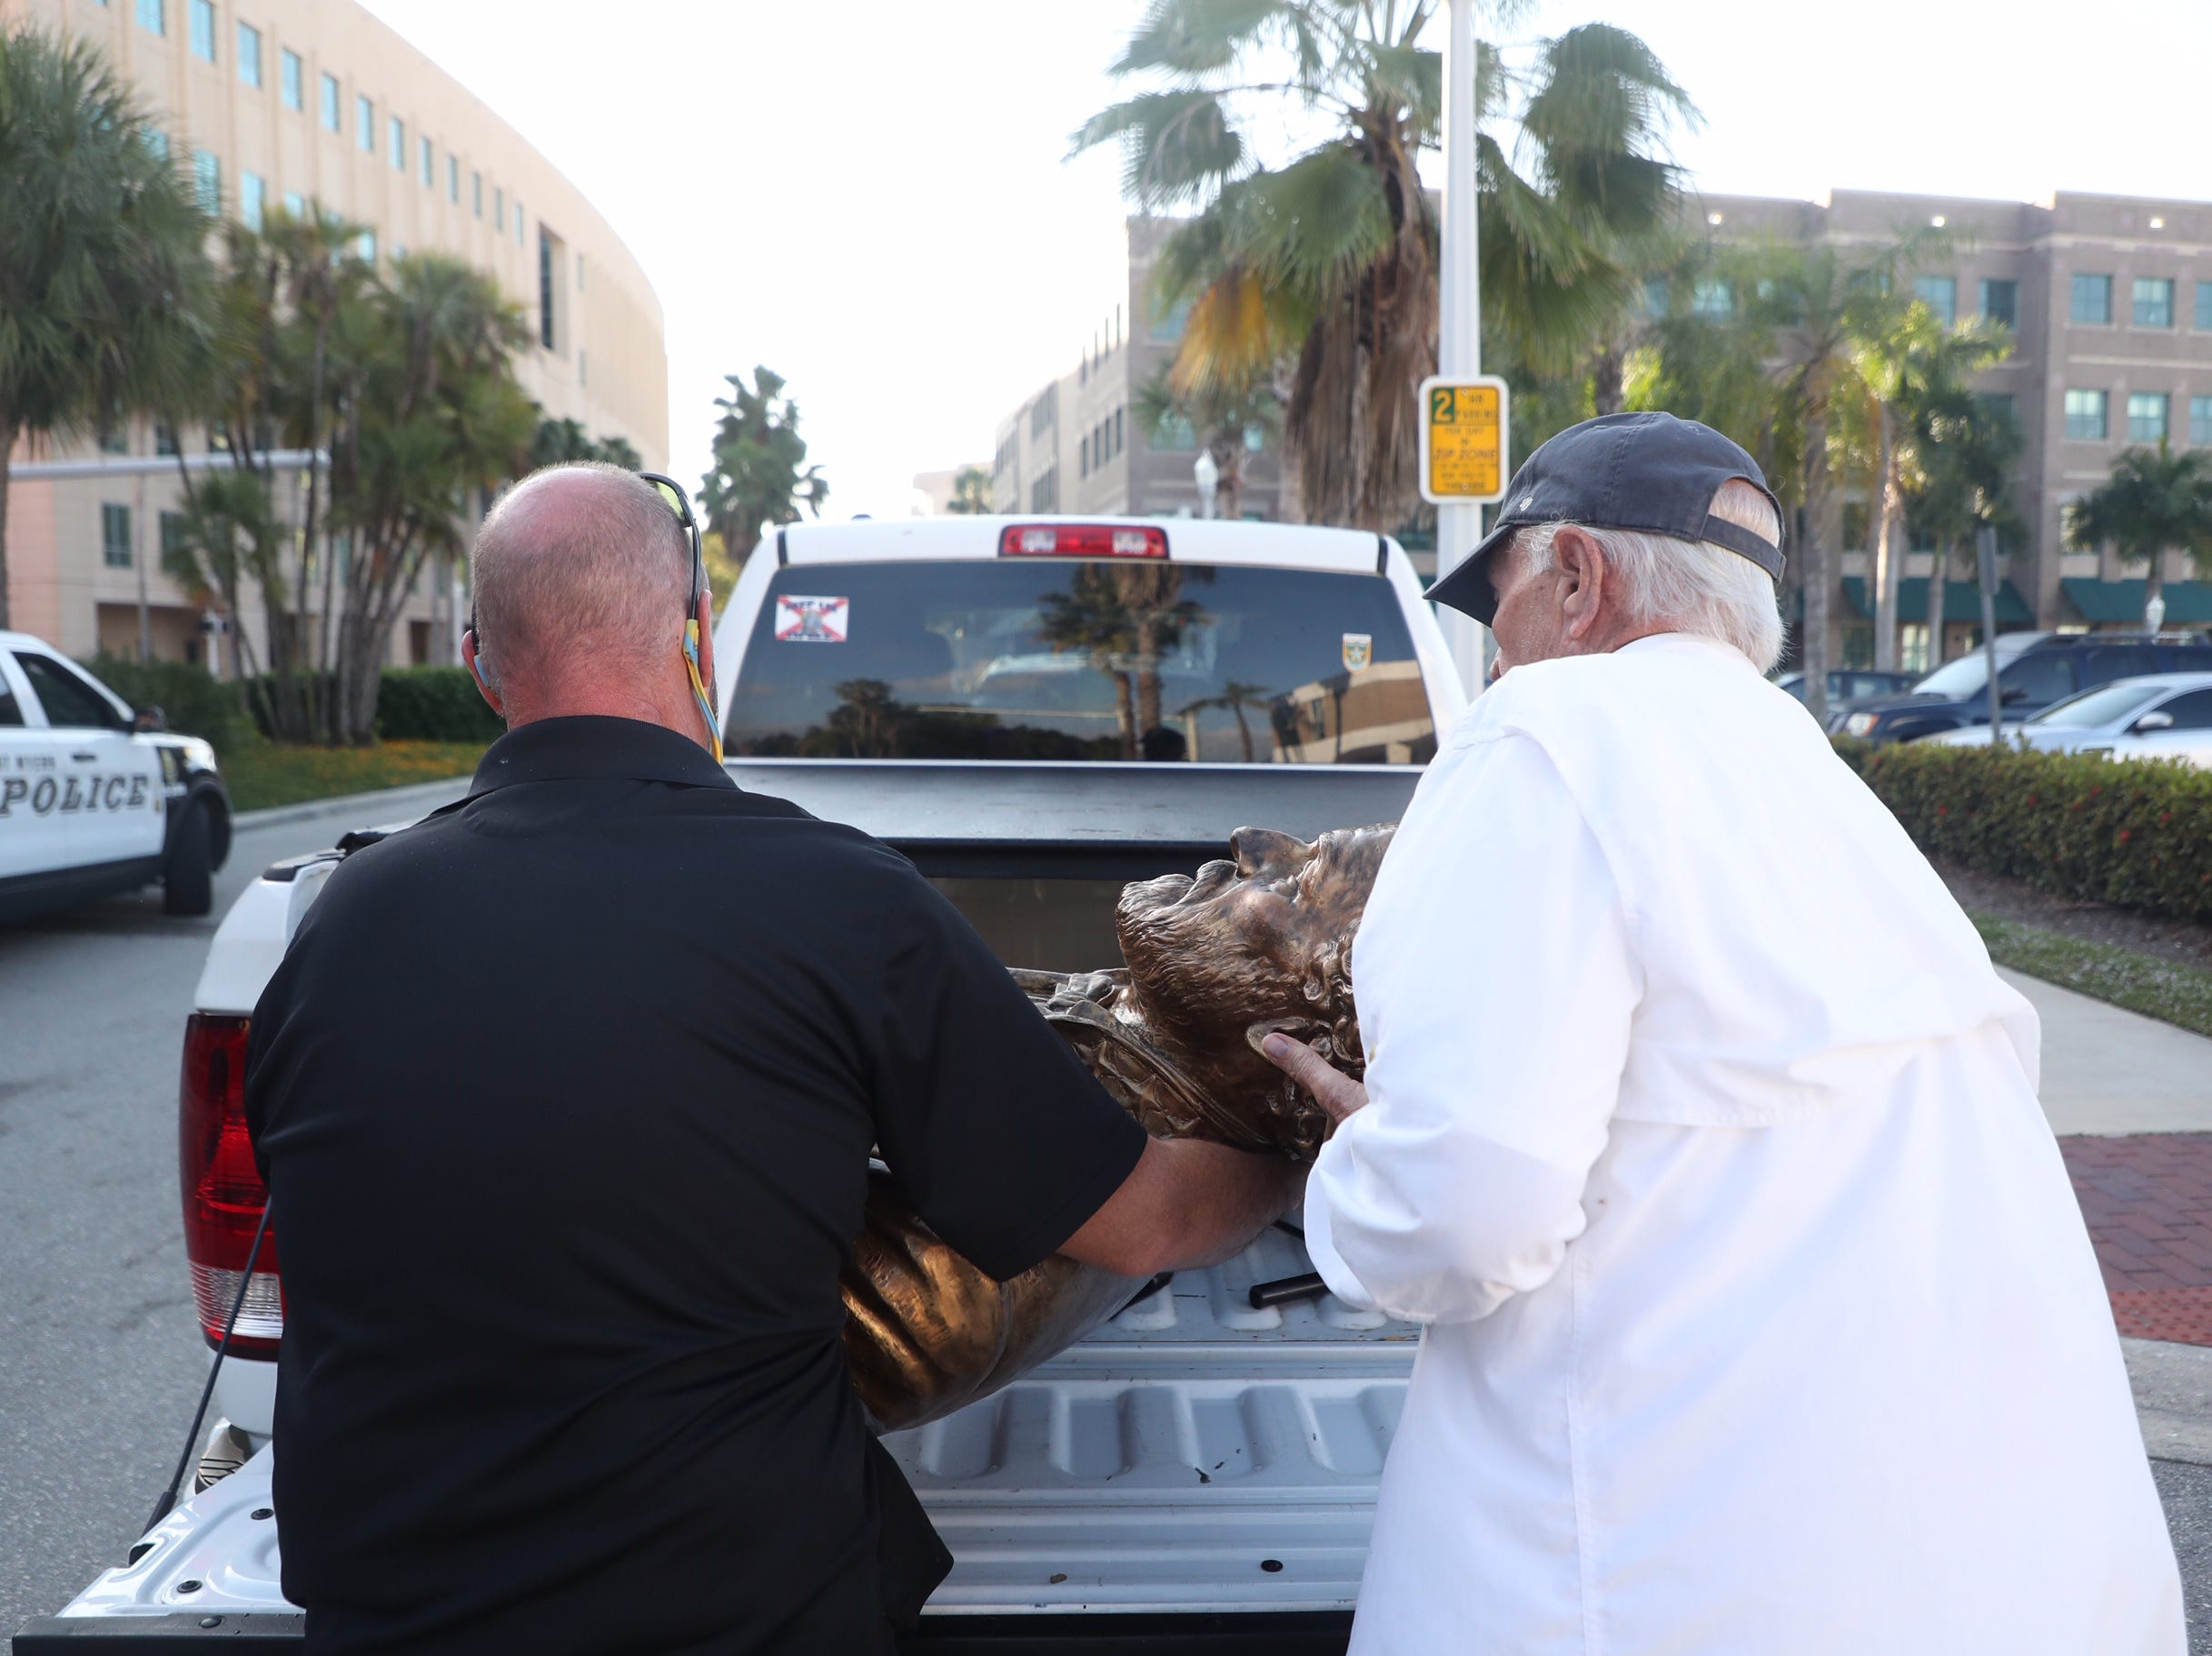 Members of the Sons of Confederate Veterans placed the Robert E. Lee bust in the back of a vehicle in downtown Fort Myers on Tuesday, March 12, 2019.